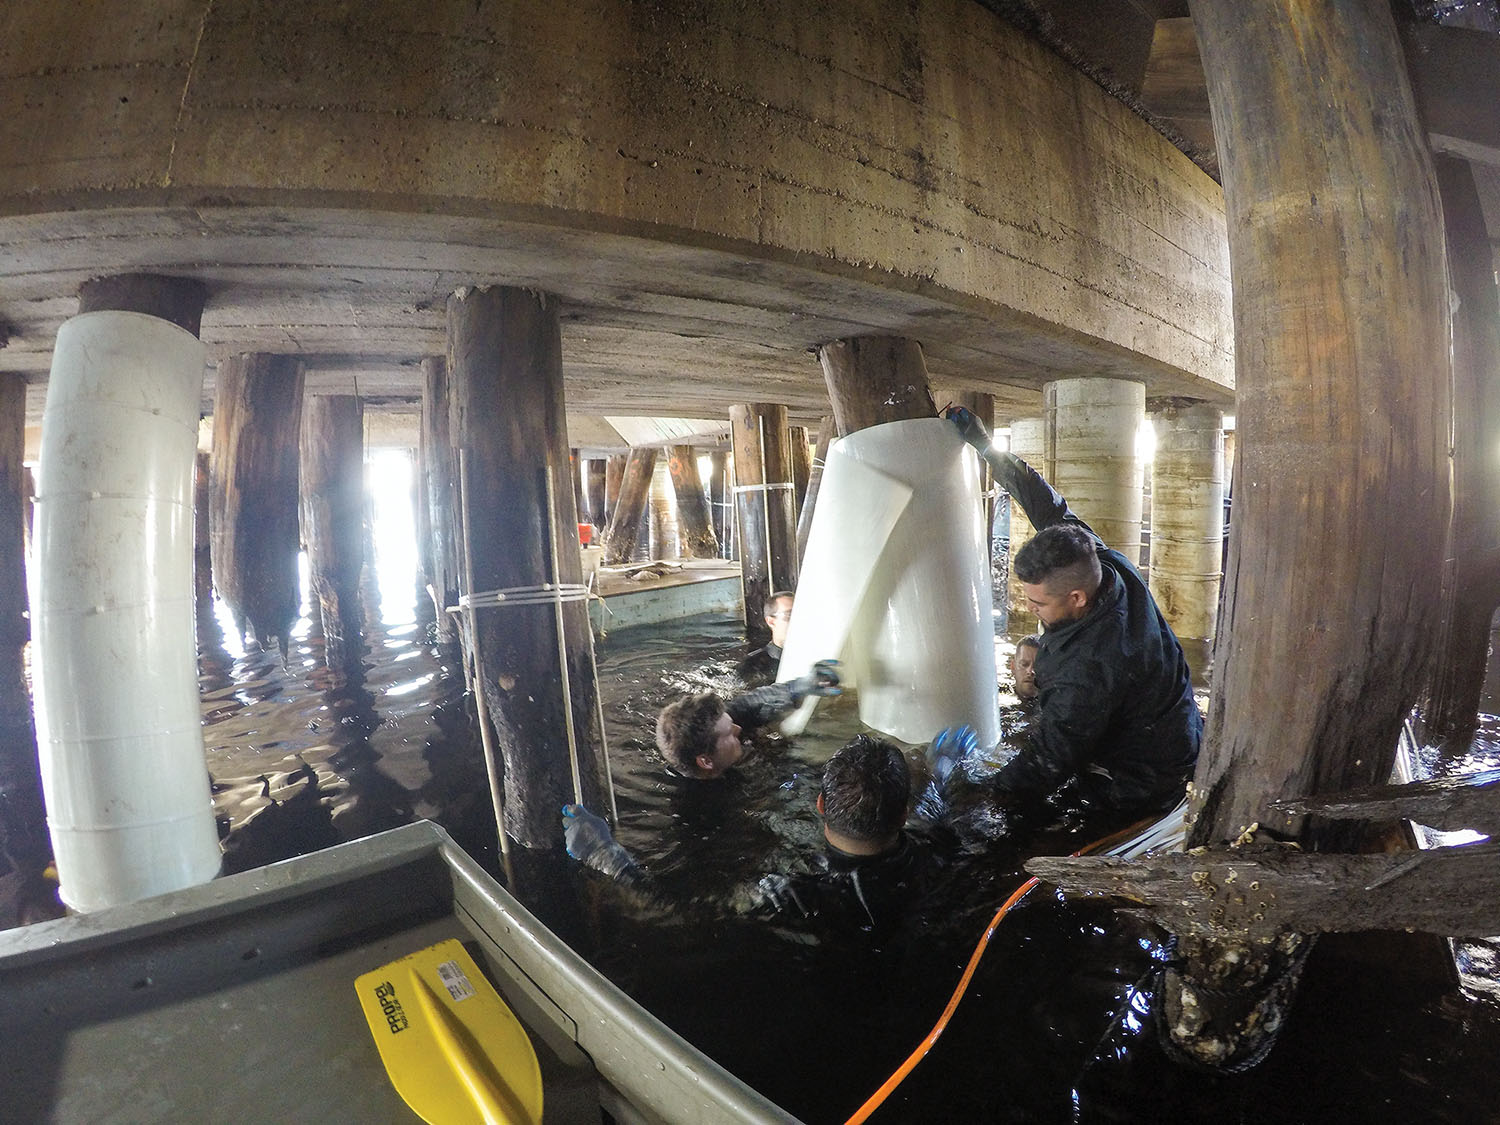 Under pier with crew from FRP Construction installing PileMedic by QuakeWrap to rapidly repair damaged timber piles at an industrial pier in Virginia. (Photo courtesy of FRP Construction/Pilemedic by QuakeWrap)